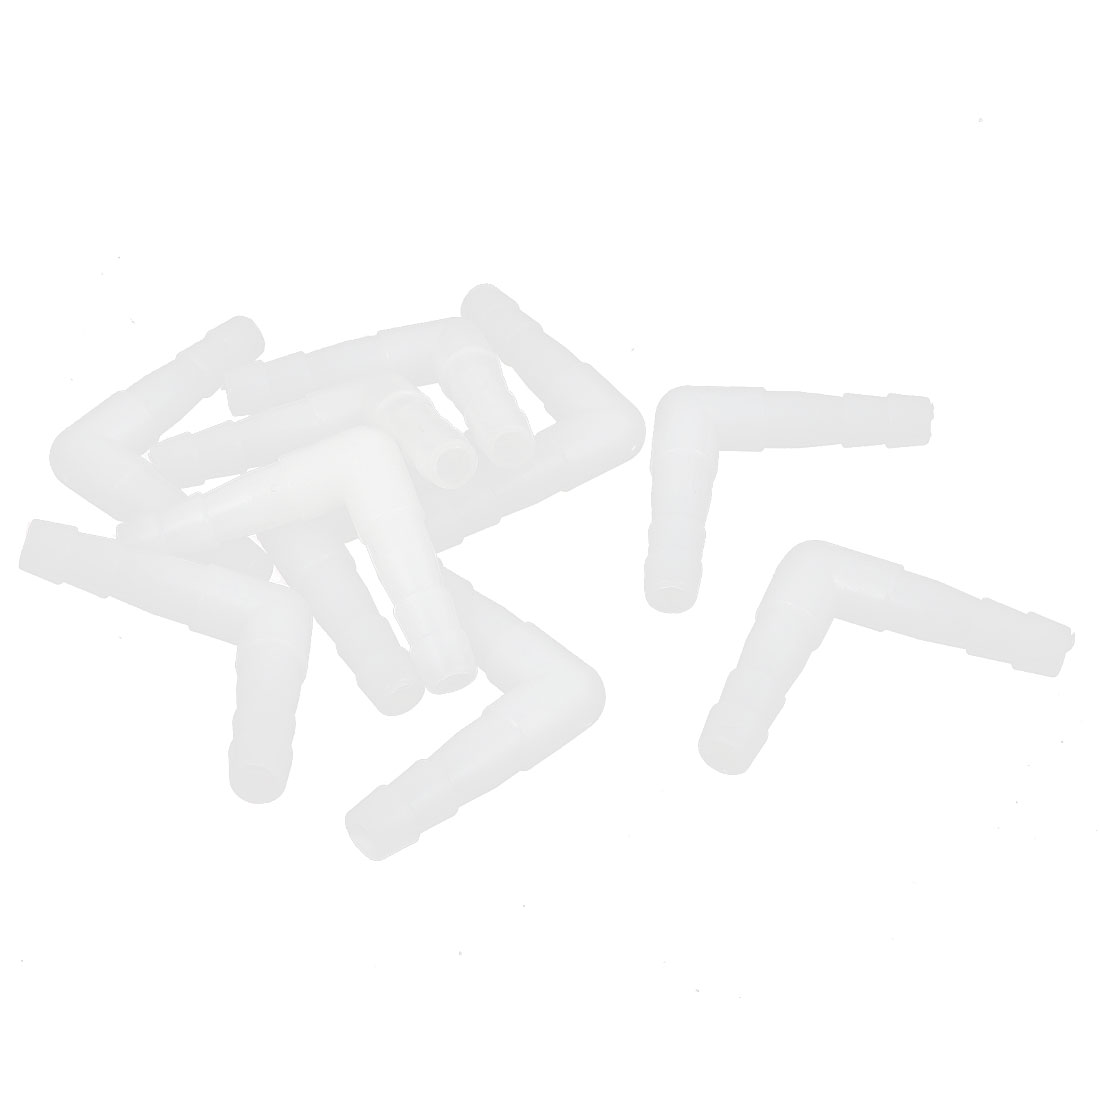 10 Pcs L Shaped Air Line Tubing Water Tube Valve White for Fish Tank Aquarium